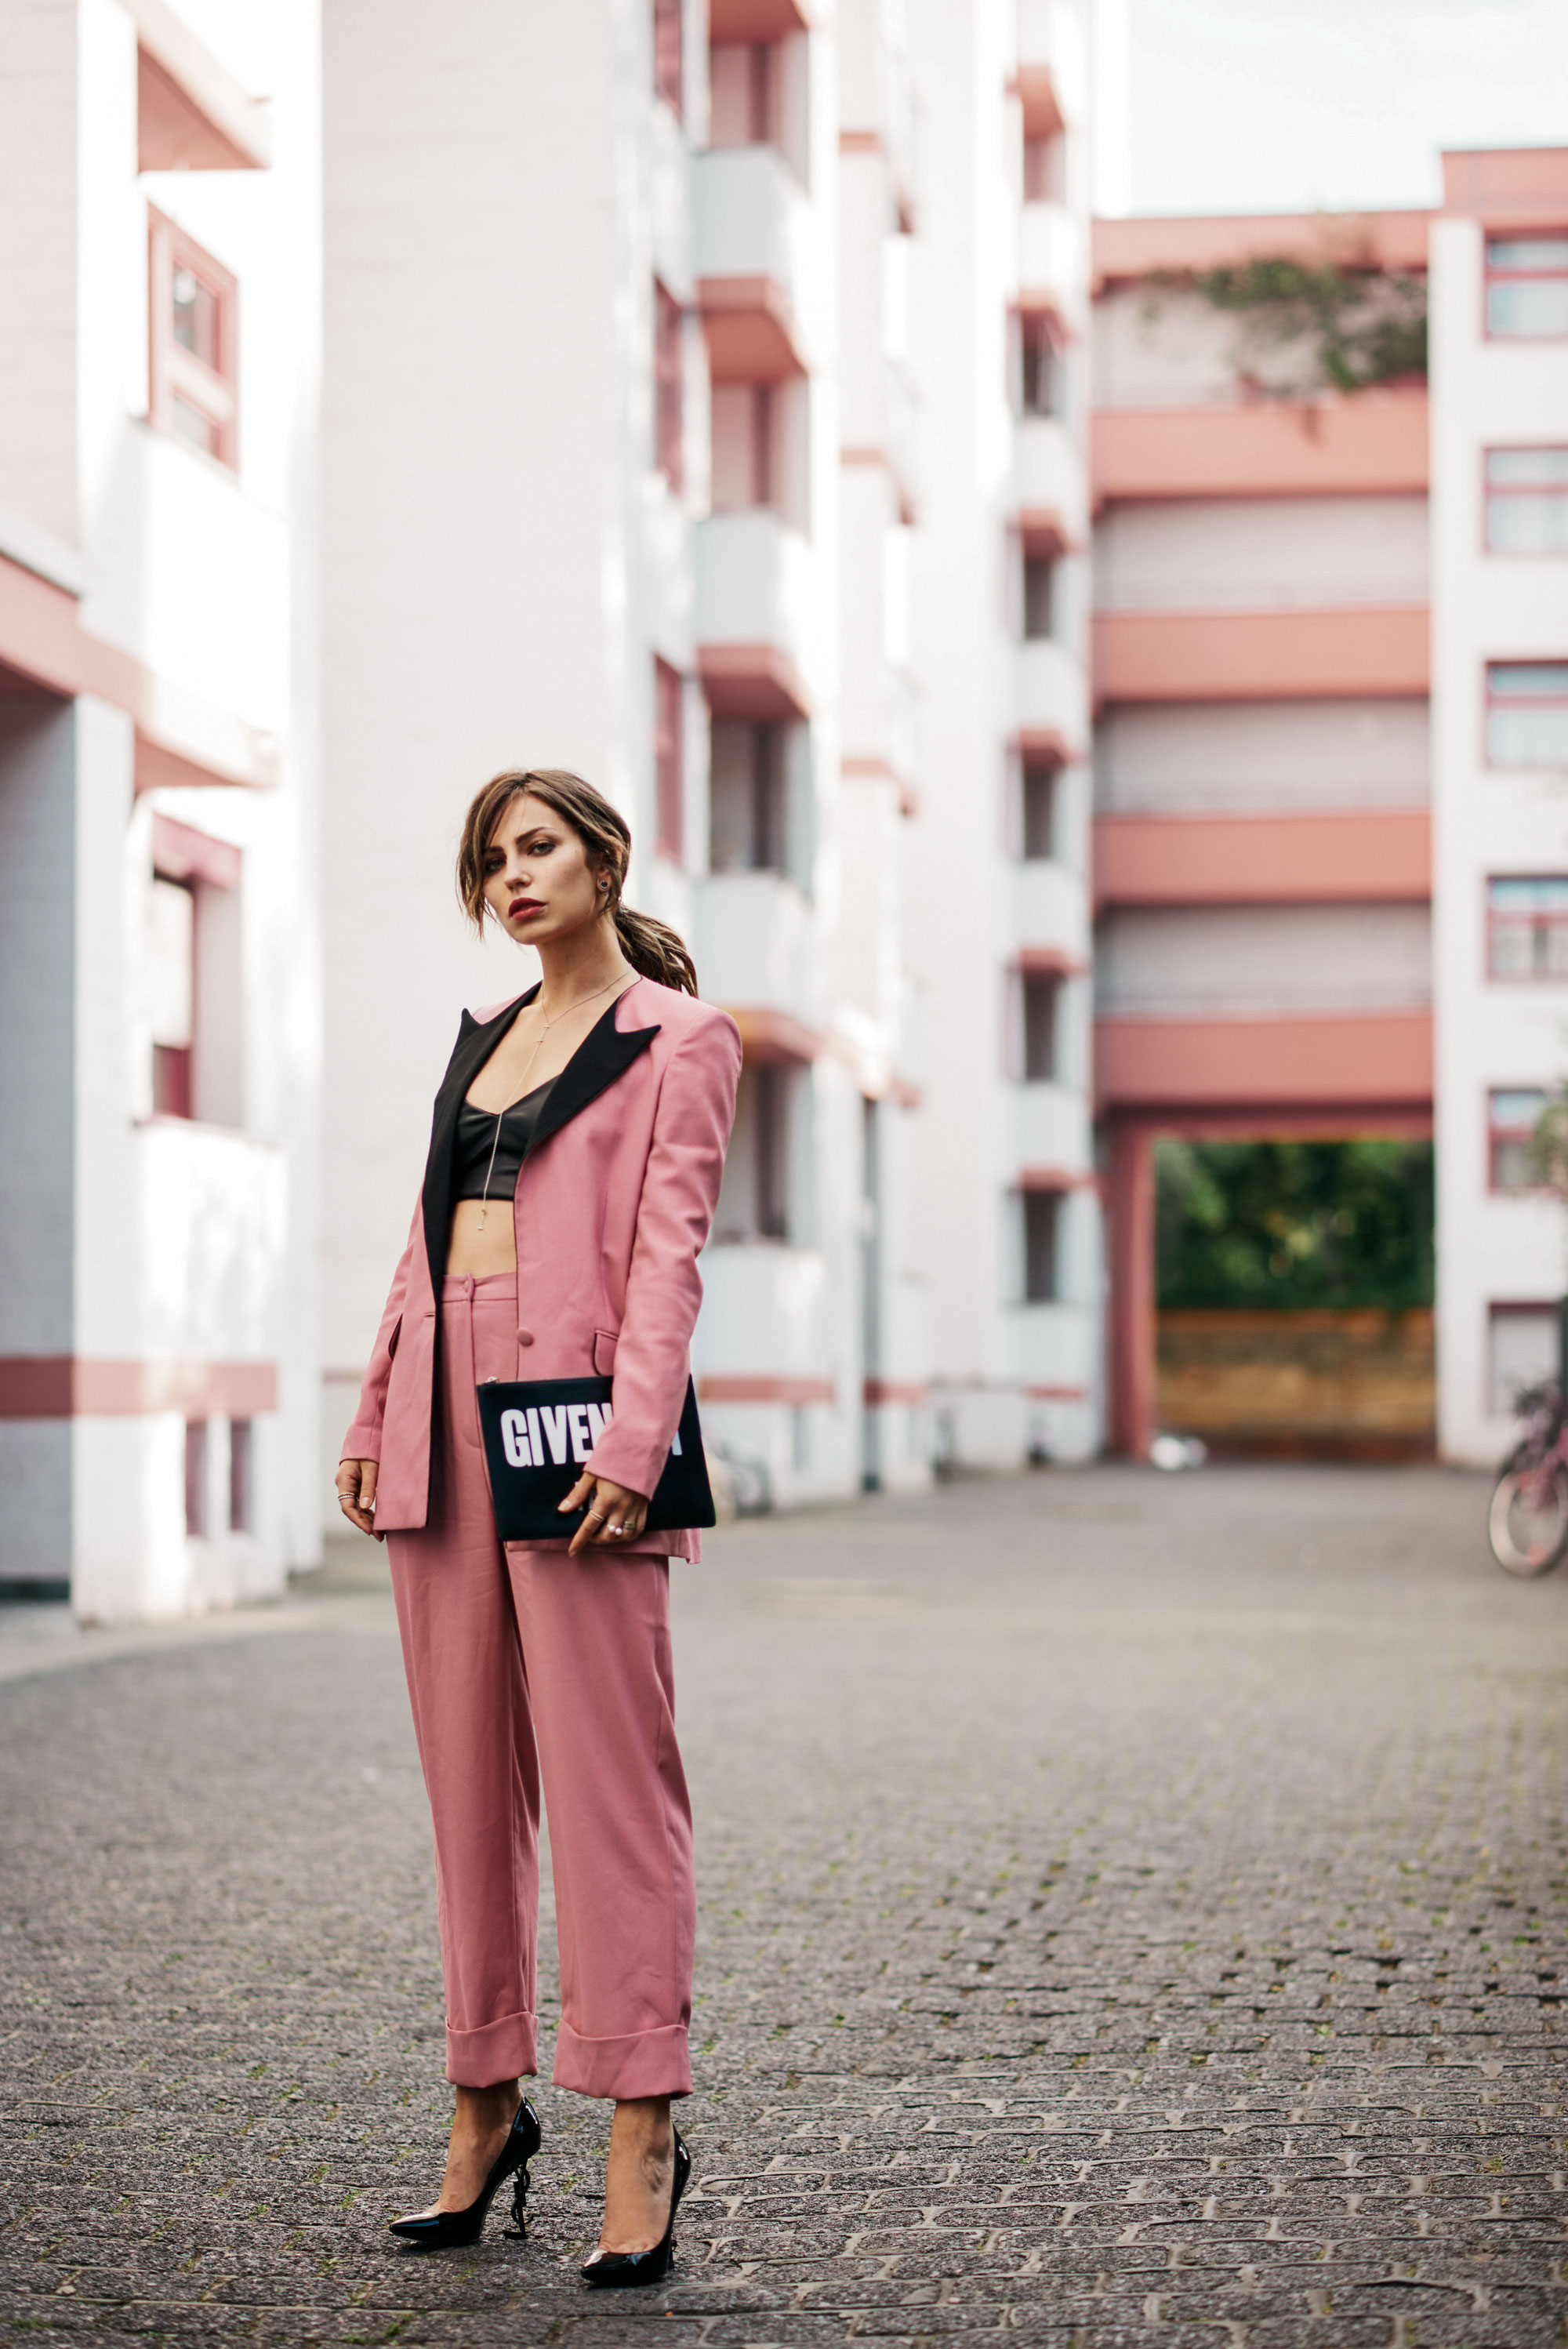 Was ist Millennial Pink? | Generation Y | Hosenanzug in Rosa, Pumps von YSL mit Logo und Givenchy Logo Clutch | #Girlboss | Blogger Editorial Shooting